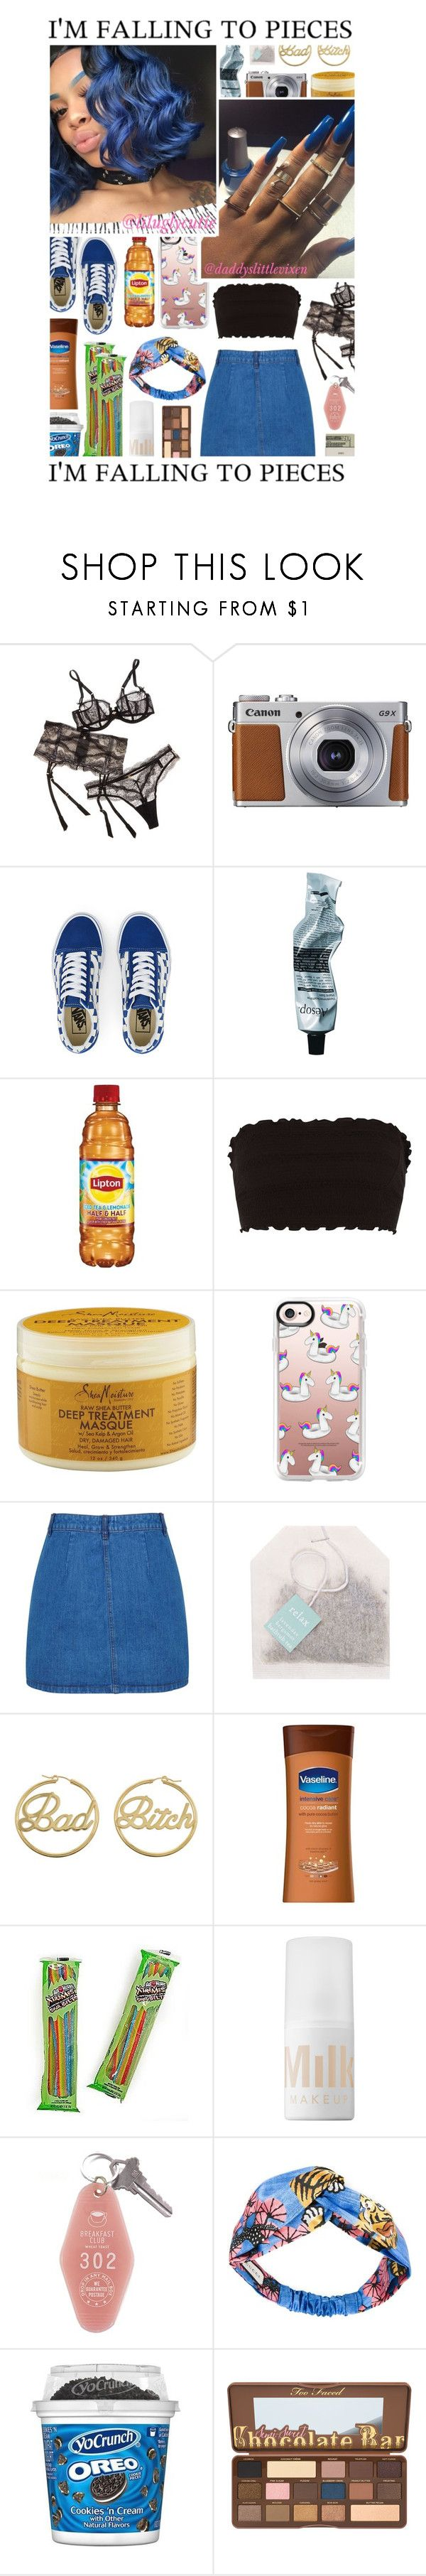 """""""Rick & Morty is my sh.it"""" by liluglycutie ❤ liked on Polyvore featuring Chantelle, Canon, Vans, Aesop, SheaMoisture, Casetify, Miss Selfridge, Paper Source, me you and Jack Spade"""